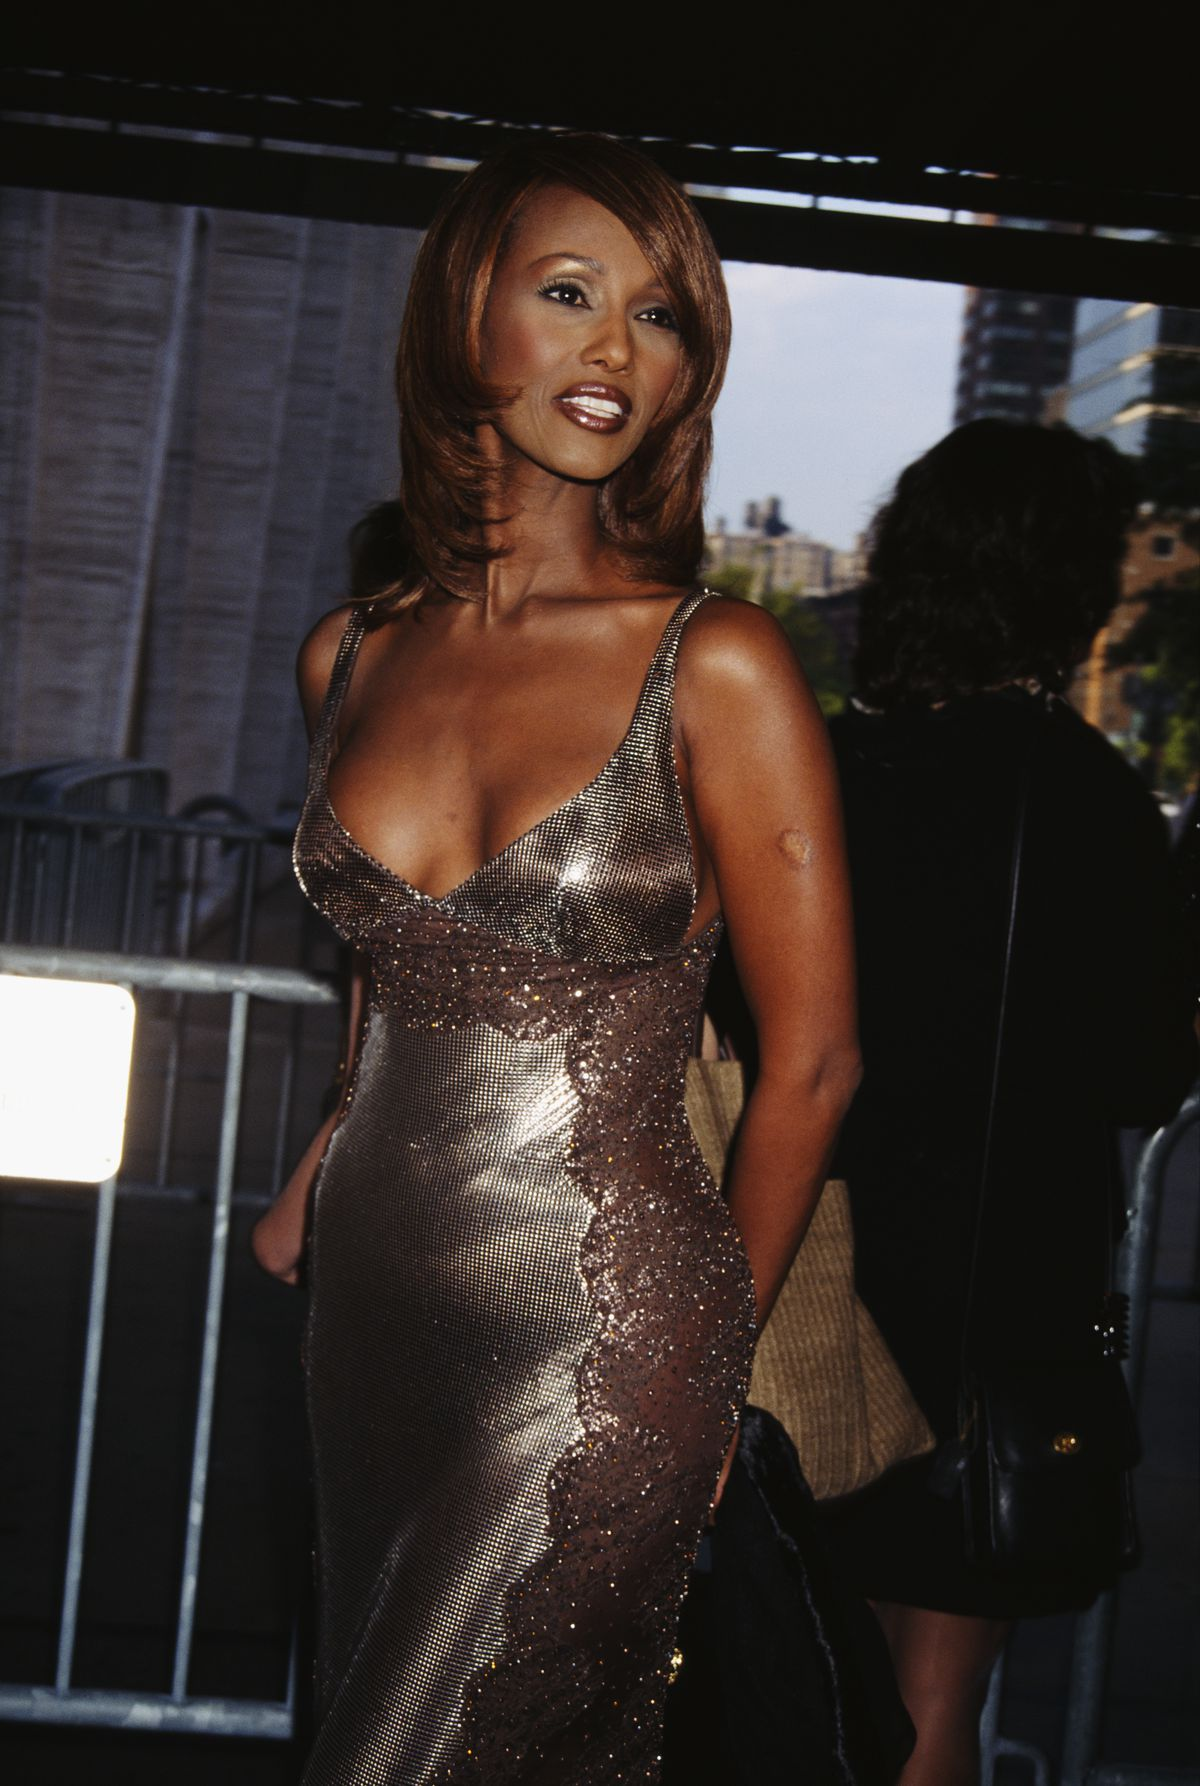 IMAN Cosmetics has been sold in both department stores and drug stores.